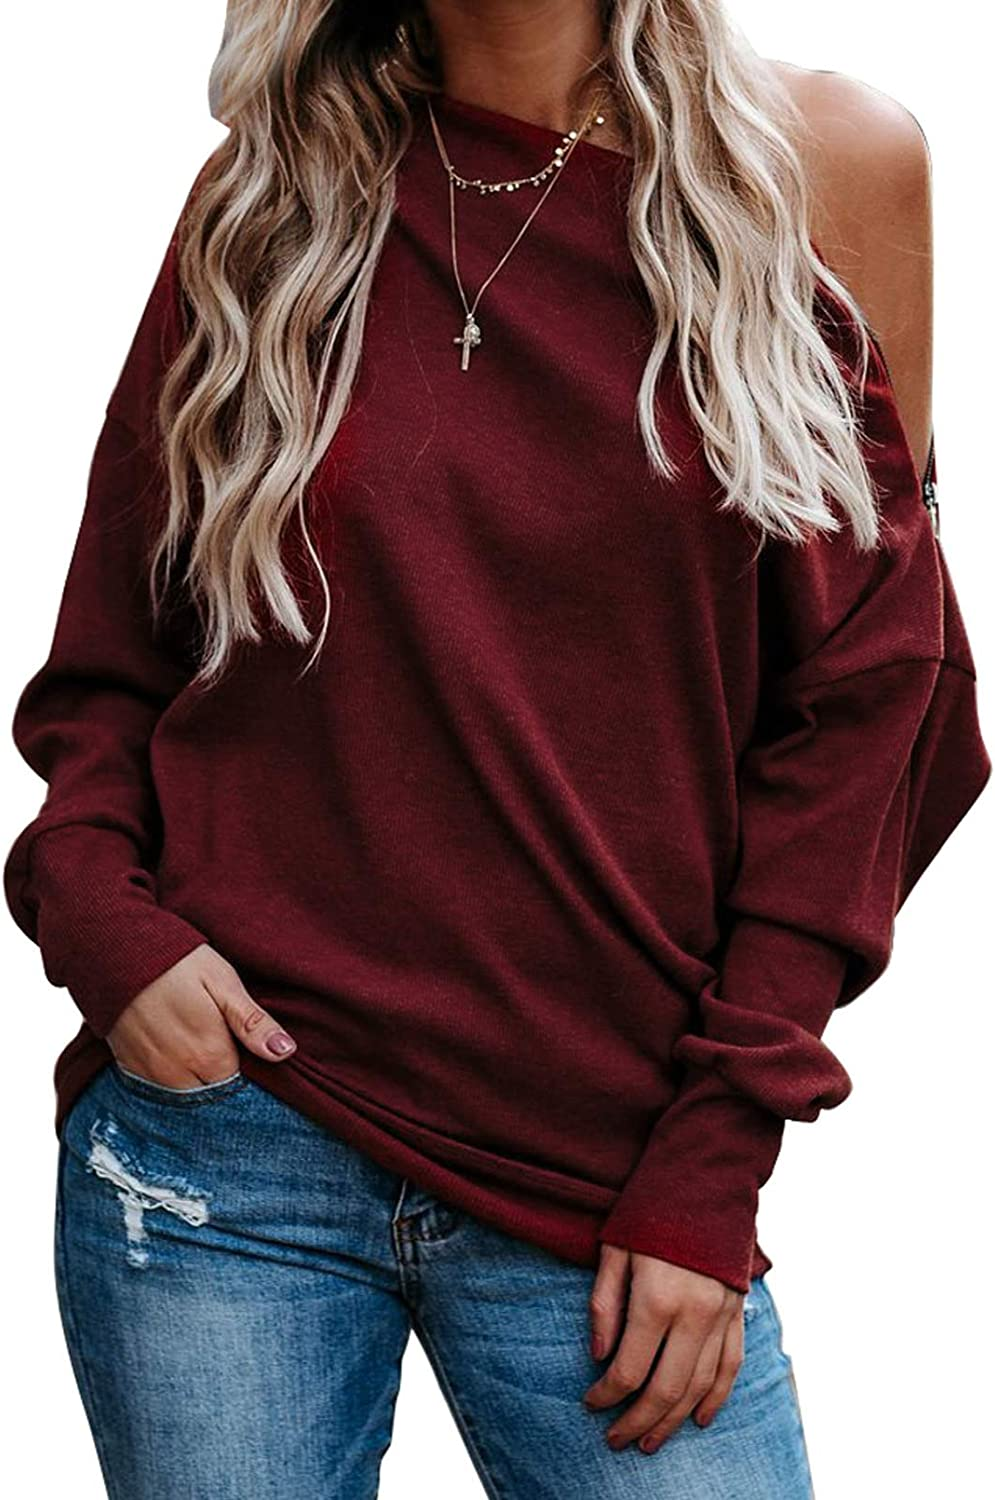 Women SolidColor Cold Shoulder Hoodie Backless Long Sleeve Zipper Casual Outfits